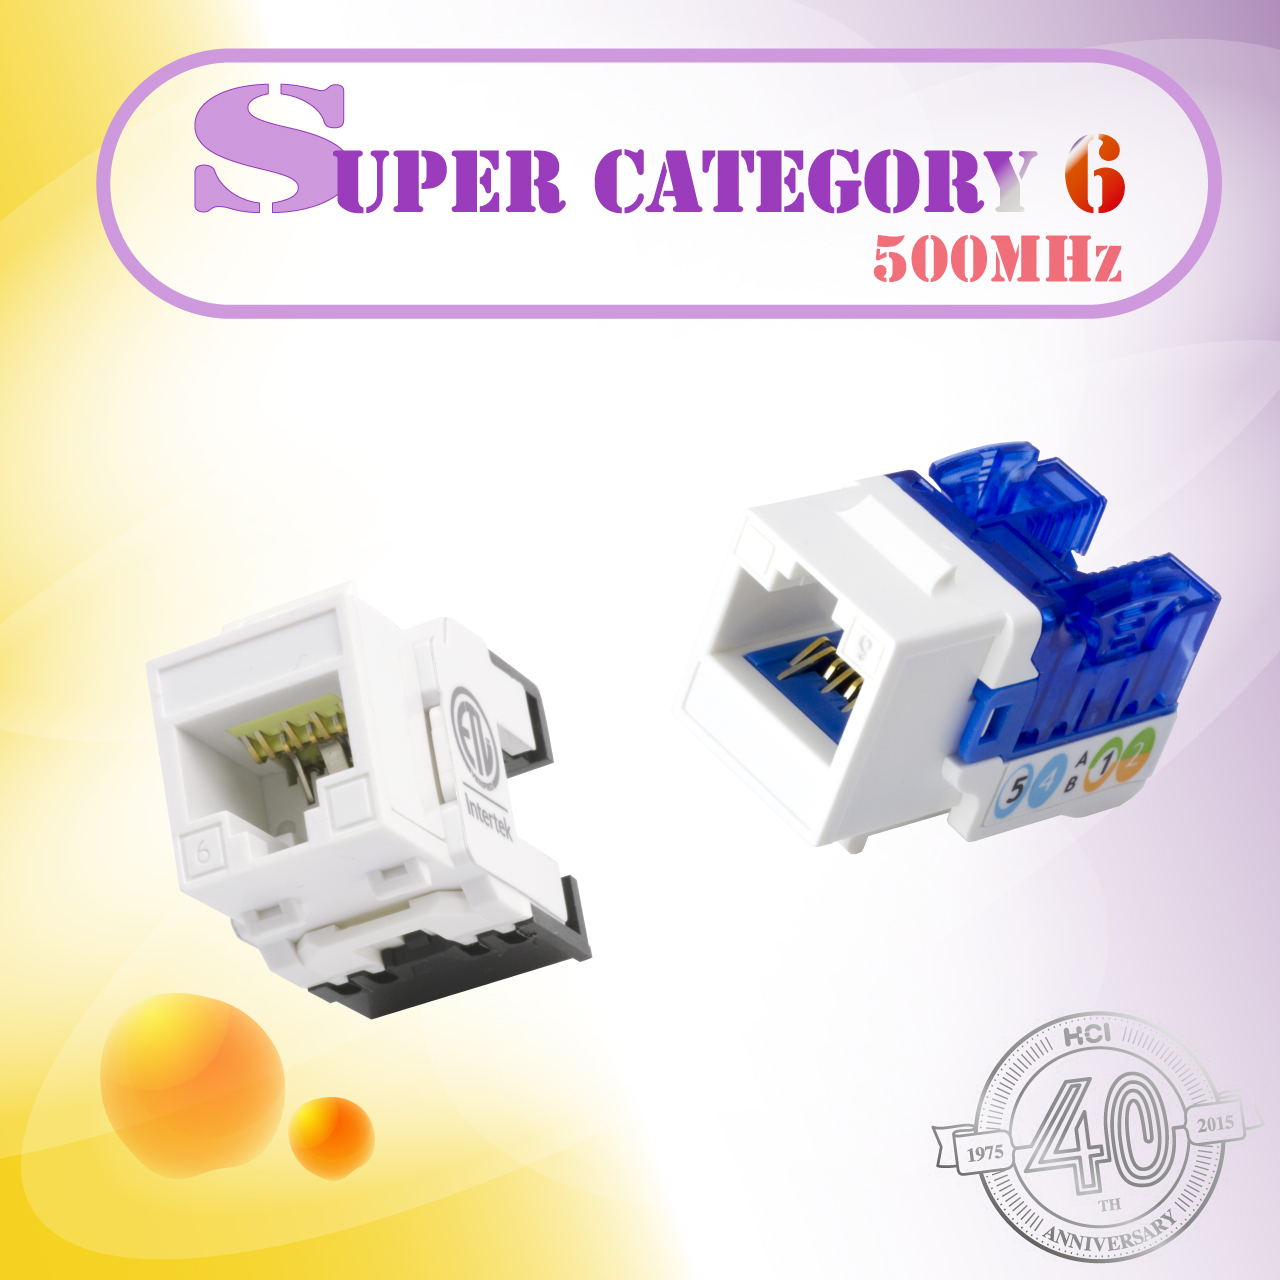 Super Category 6 Series - Super Key 6 Series Keystone jack